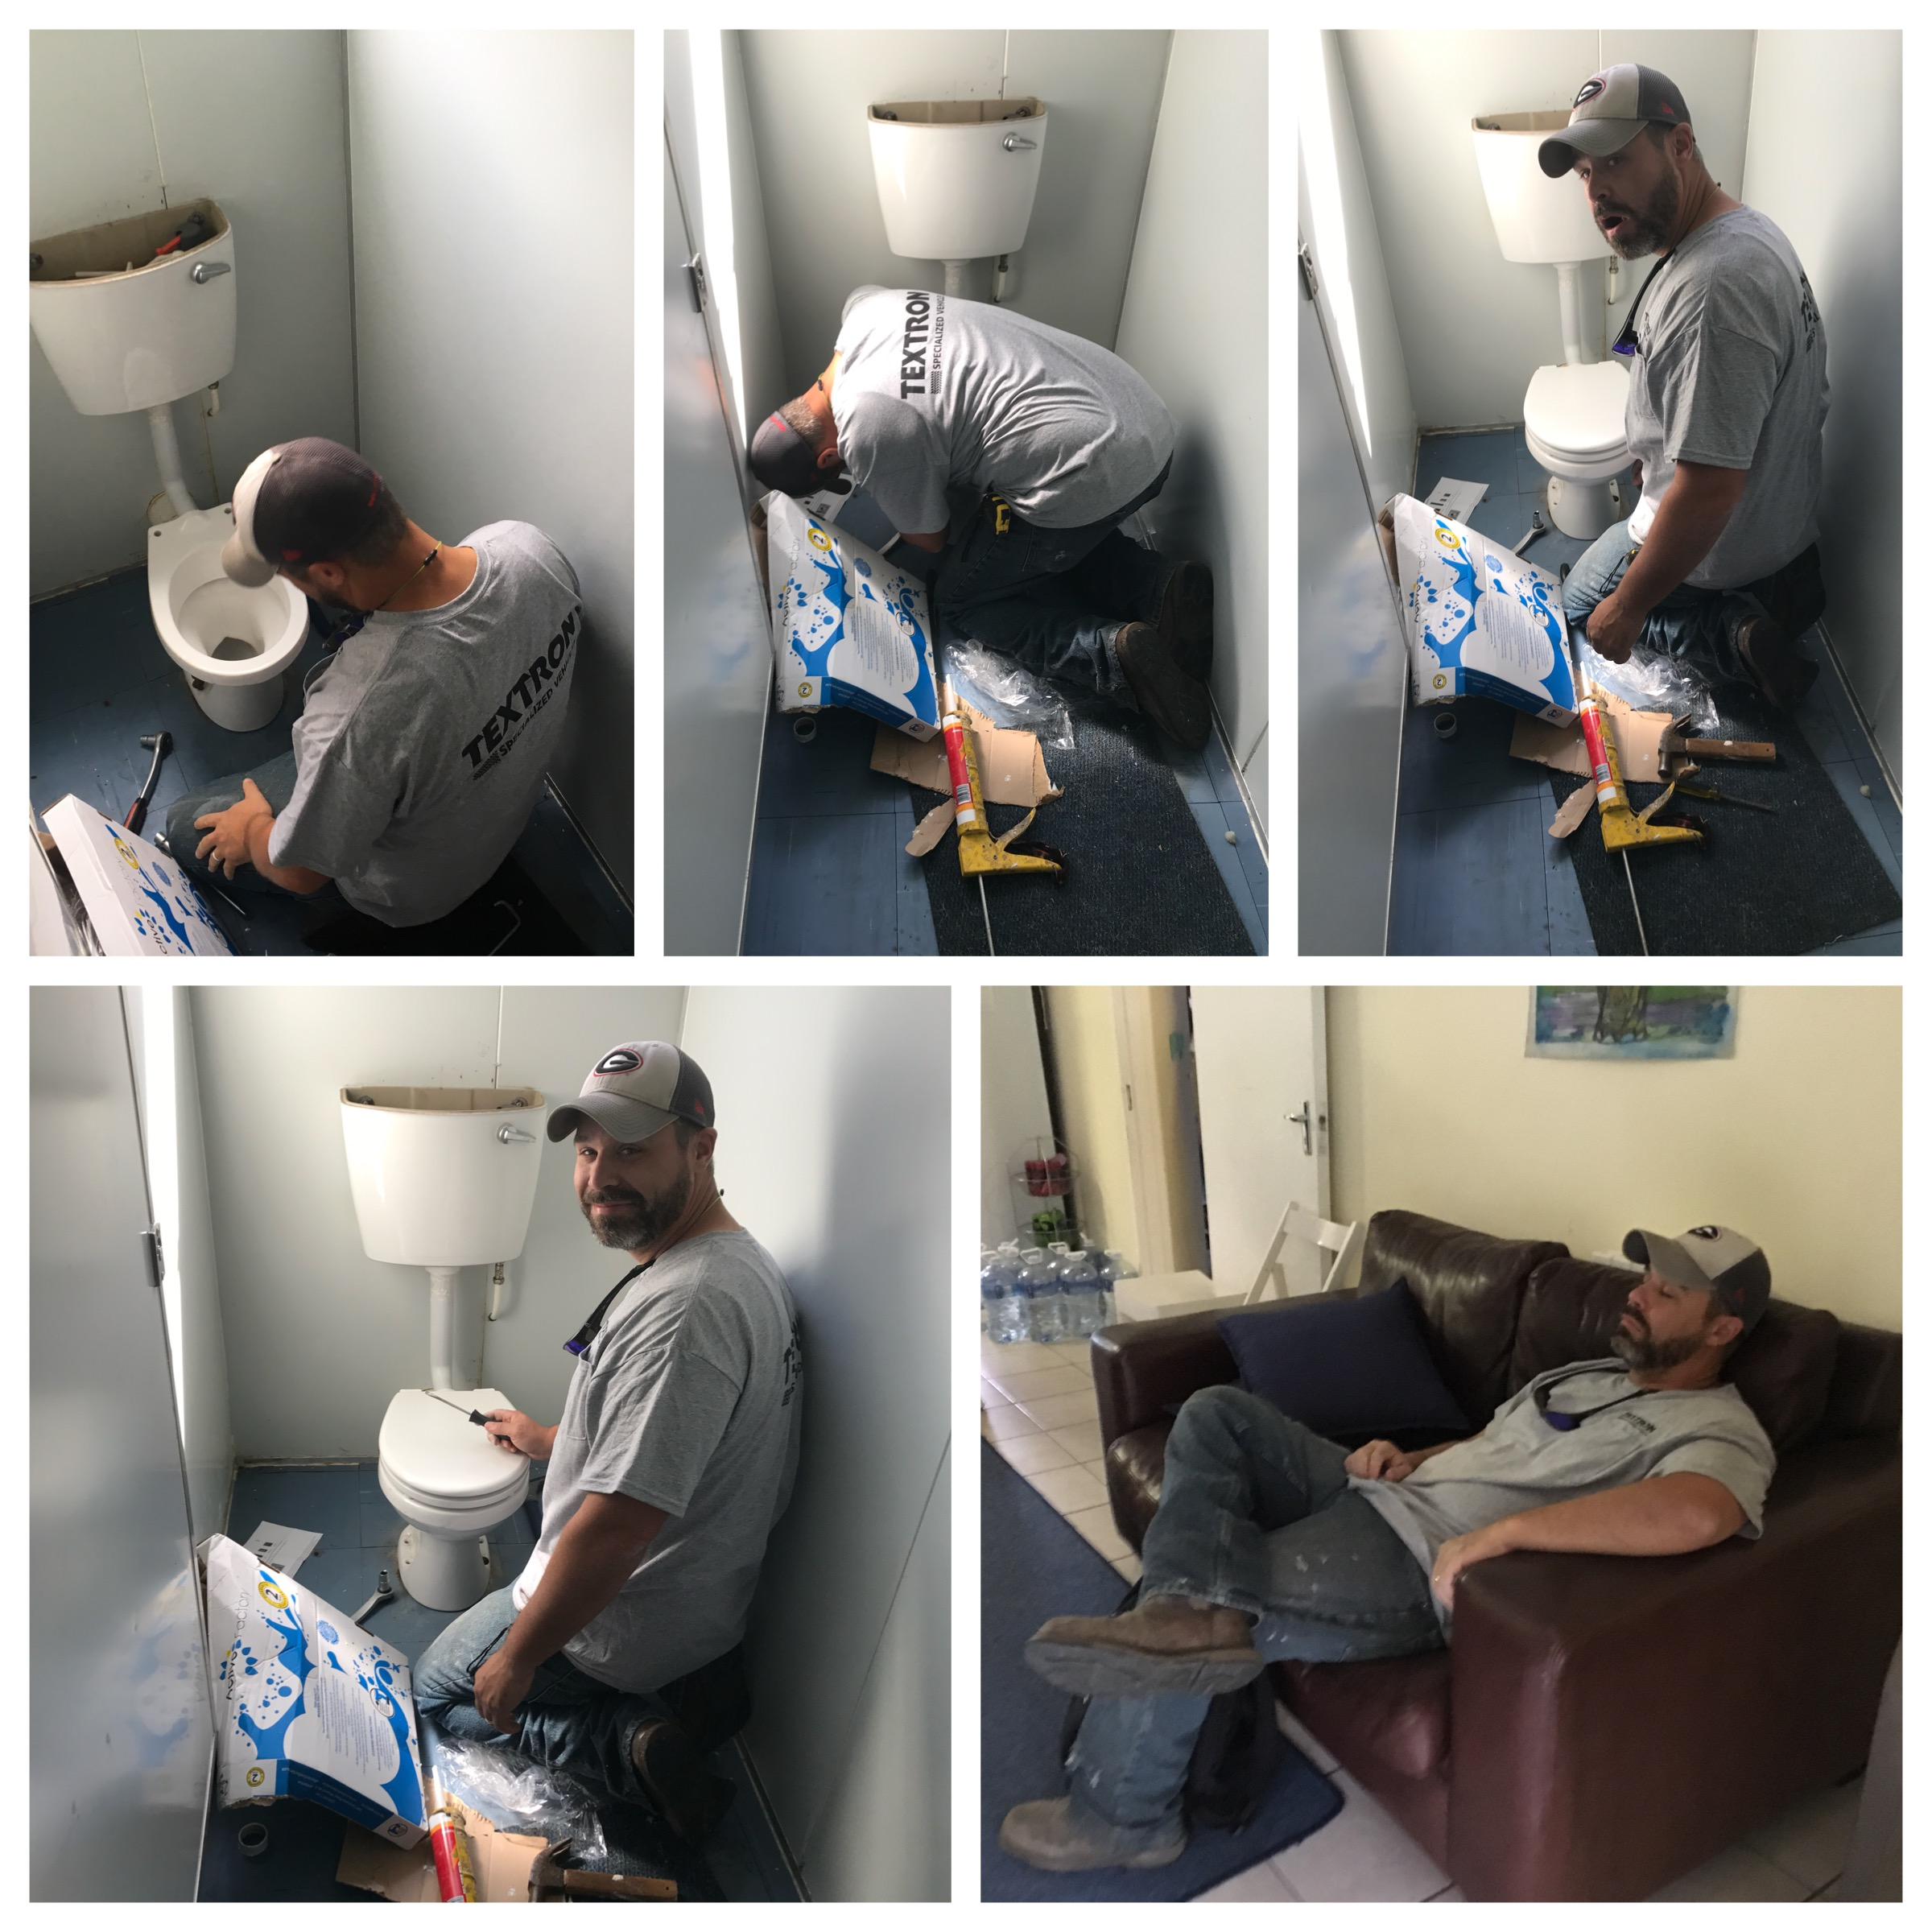 A man and his toilet. 😂 All that fixing called for a nap!